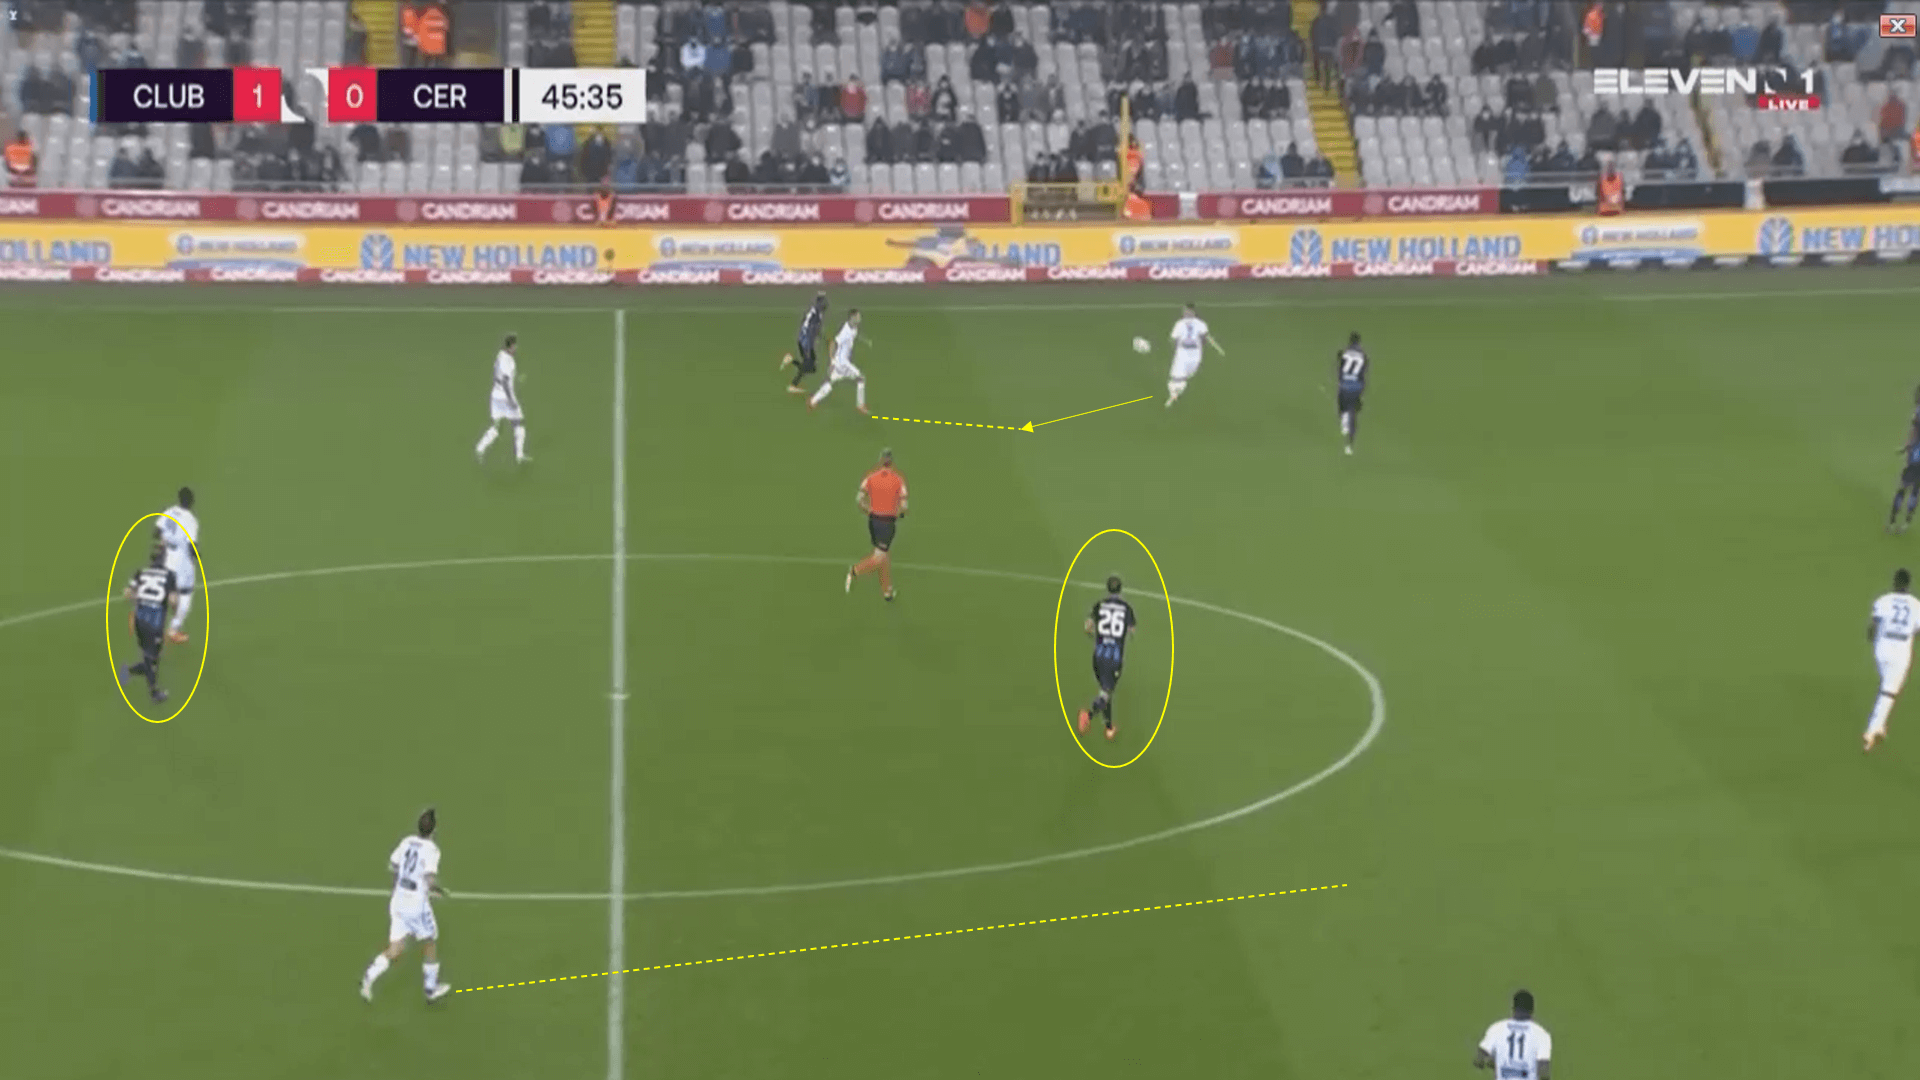 Belgian Pro League 2020/2021 - Club Brugge v Cercle Brugge - tactical analysis tactics